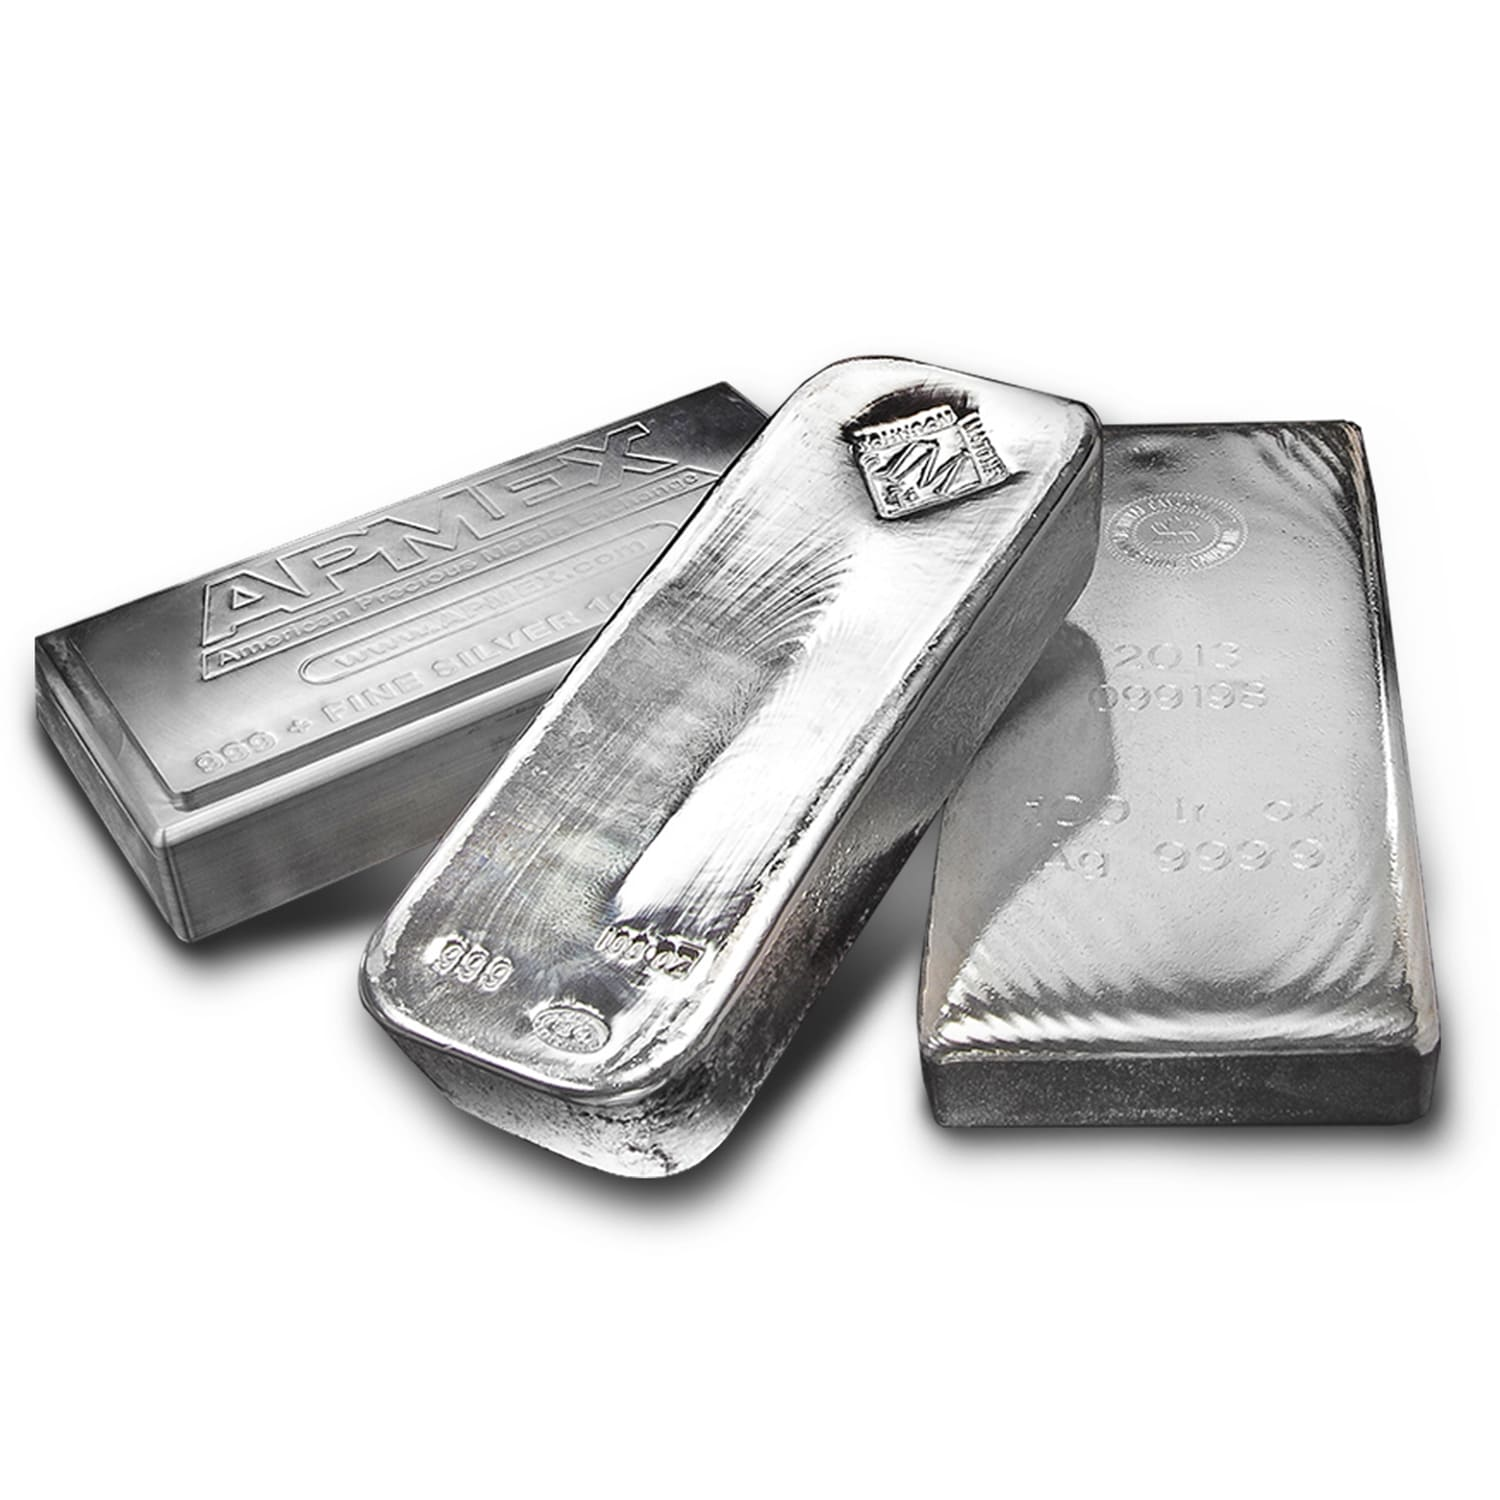 103.55 oz Silver Bar - Secondary Market